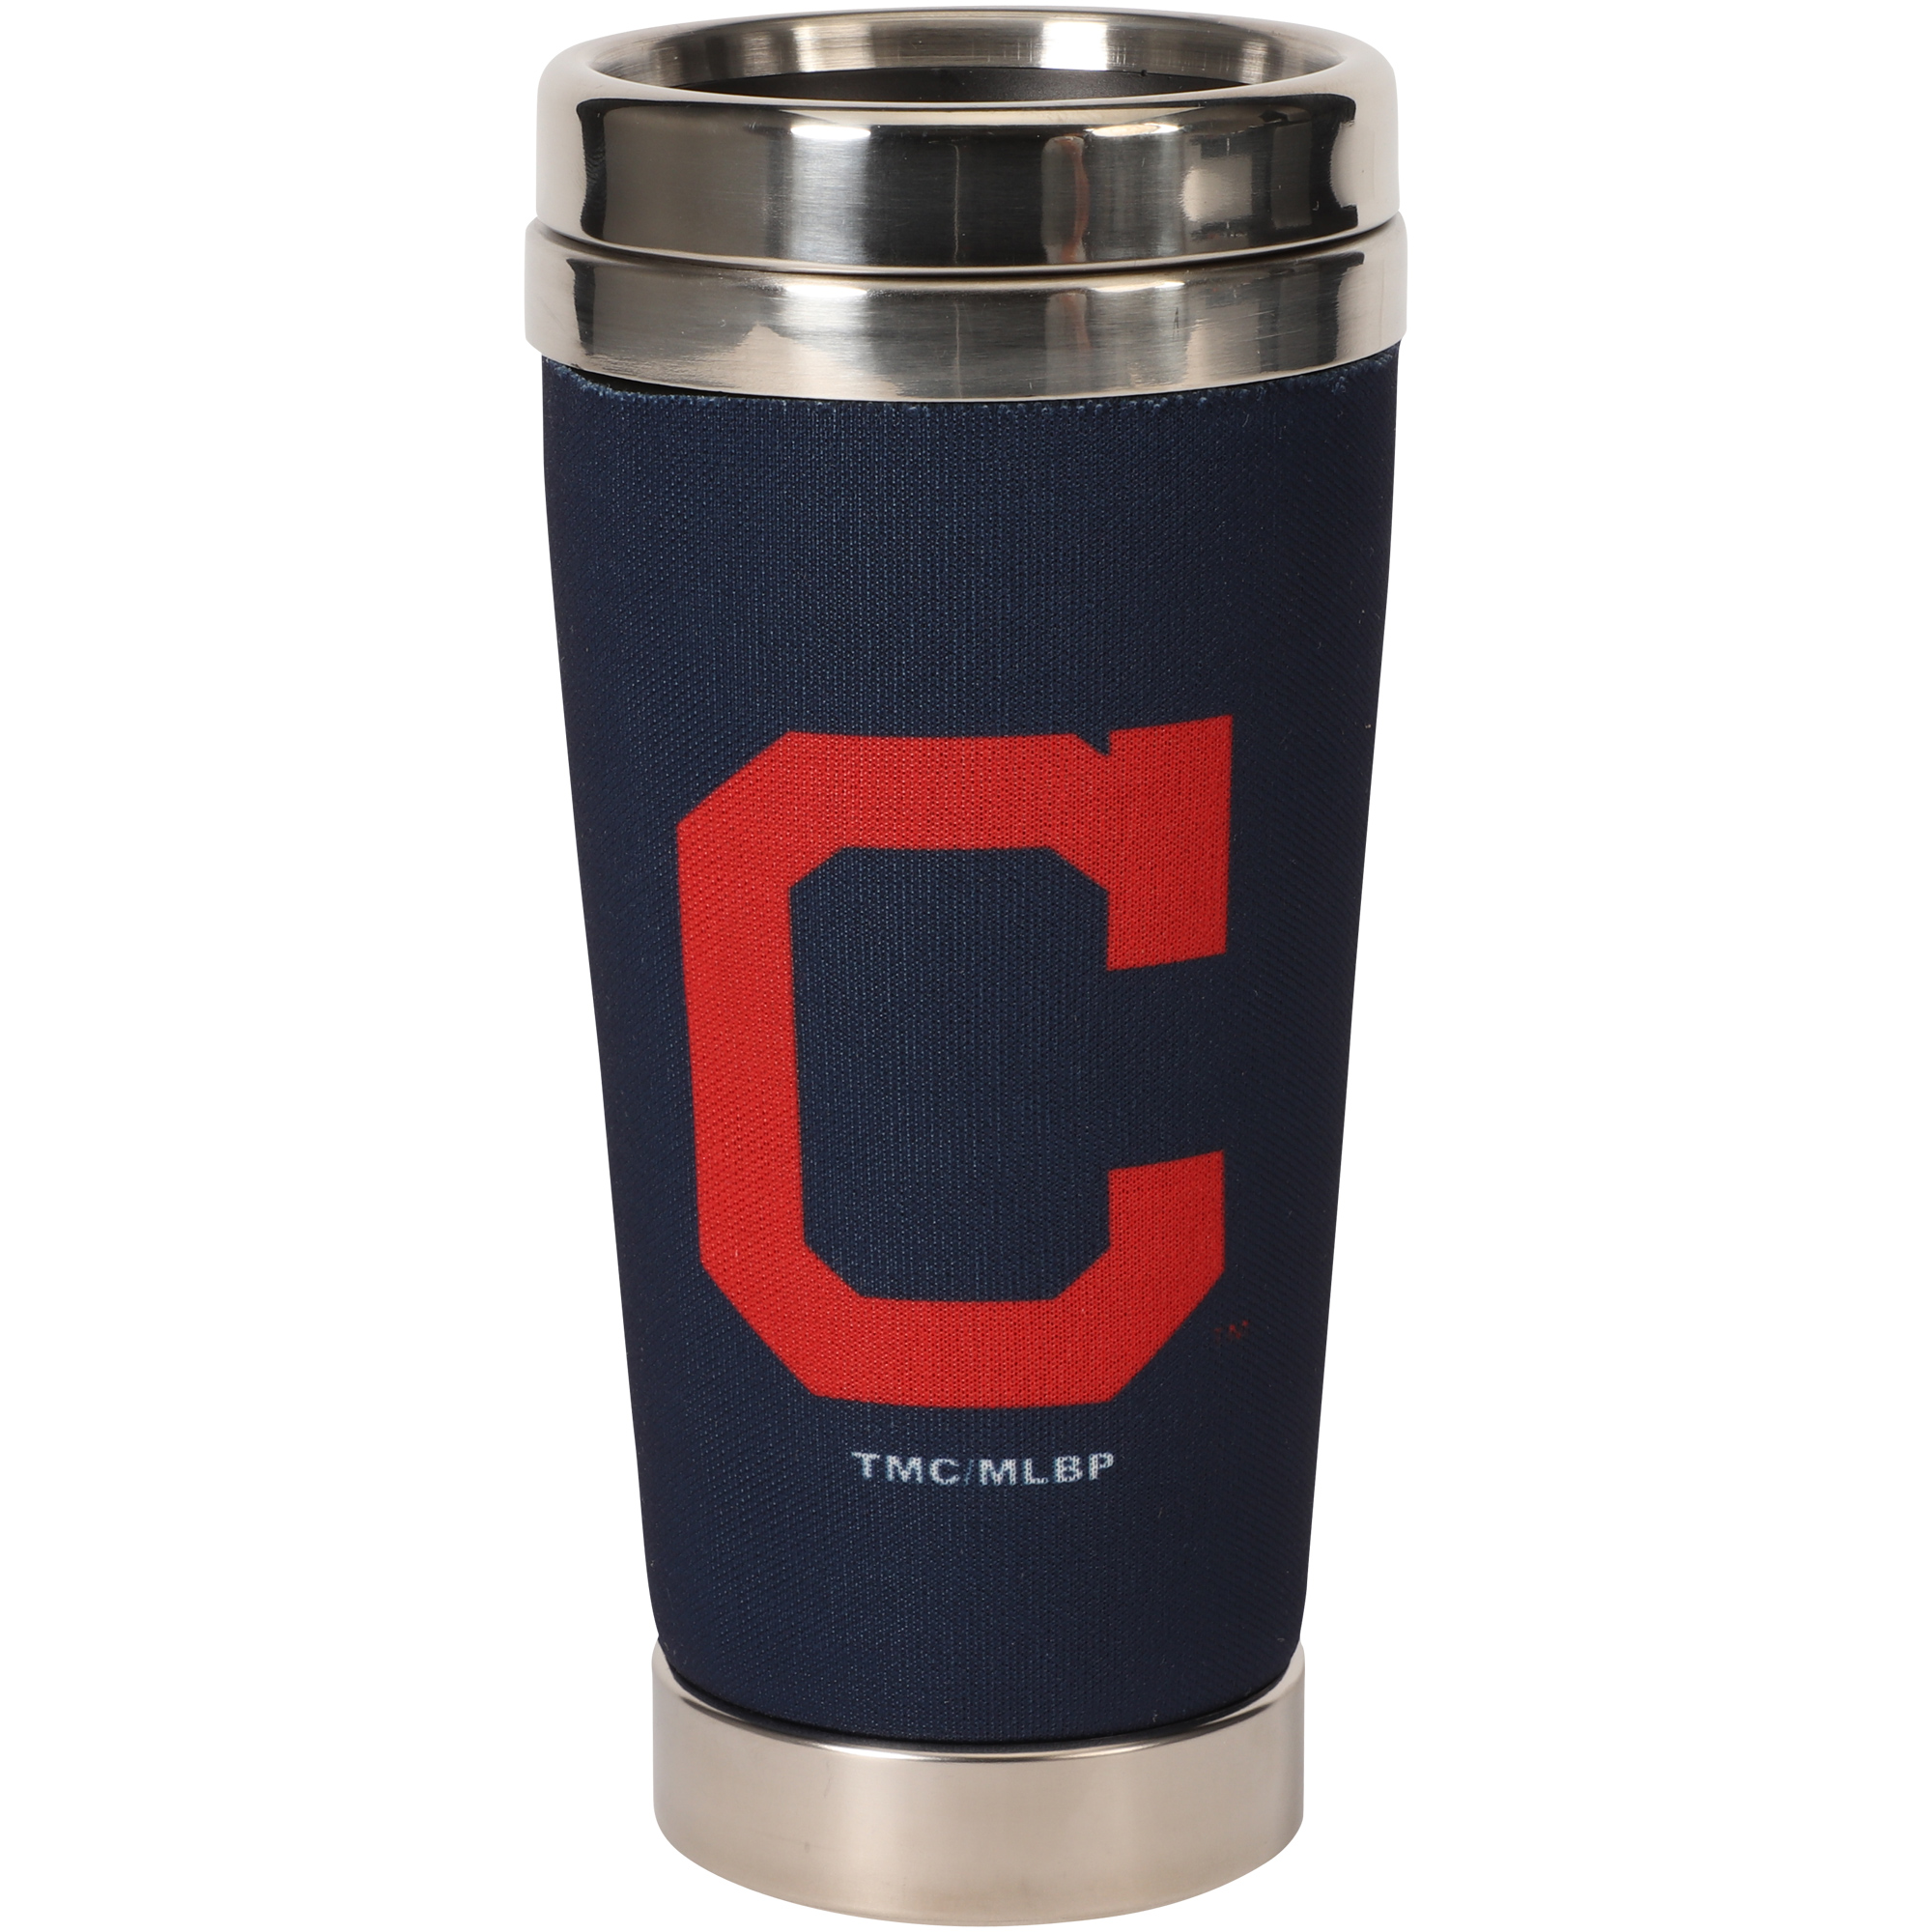 Cleveland Indians 16oz. Primary Logo Stainless Steel Neoprene Tumbler - No Size